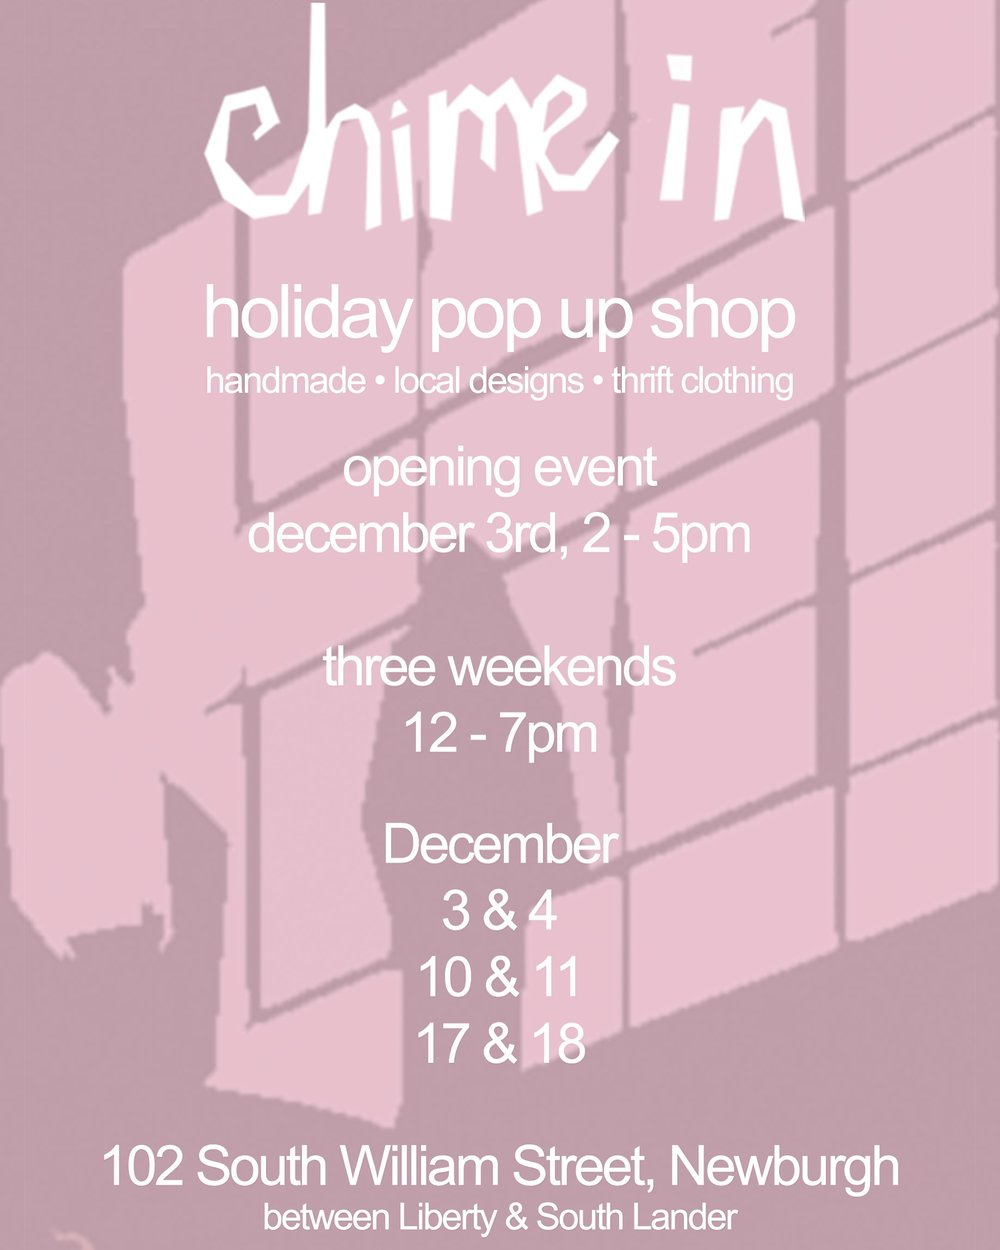 chime in holiday pop up shop